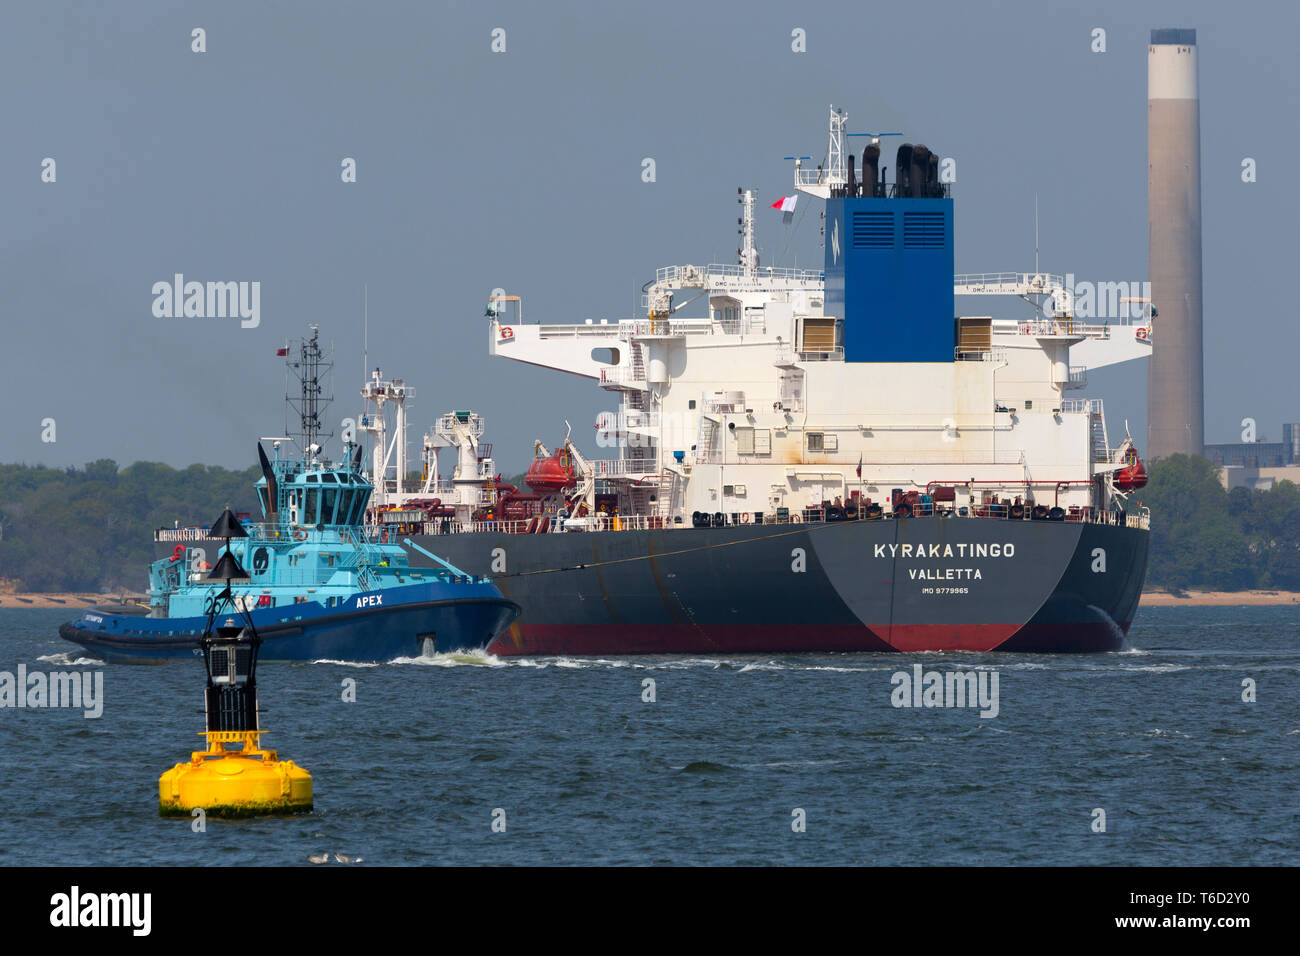 Kyrakatingo Valletta Voith Schneider Power System Propulsion Chemical Southampton Services Port Towing Tanker Oil Refinery Fawley The Solent Stock Photo Alamy